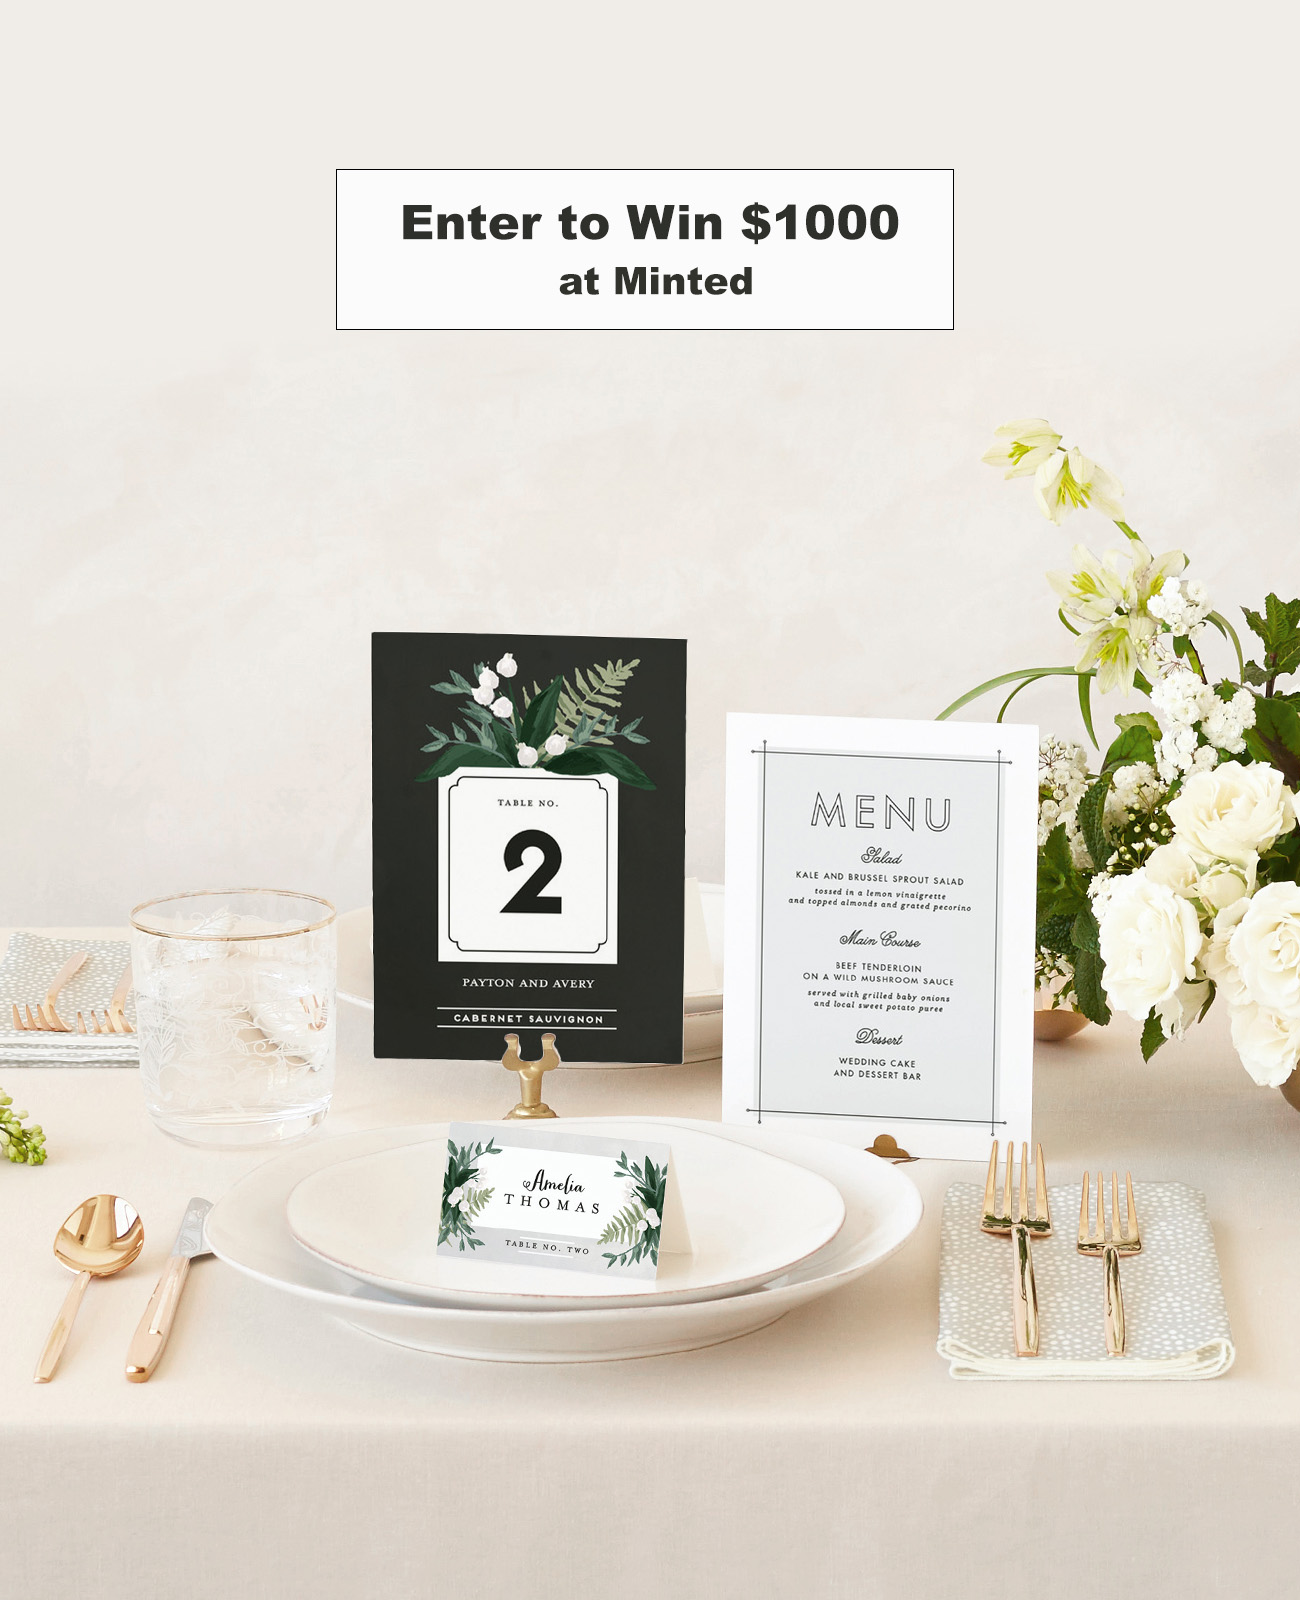 WIn $1000 at MInted